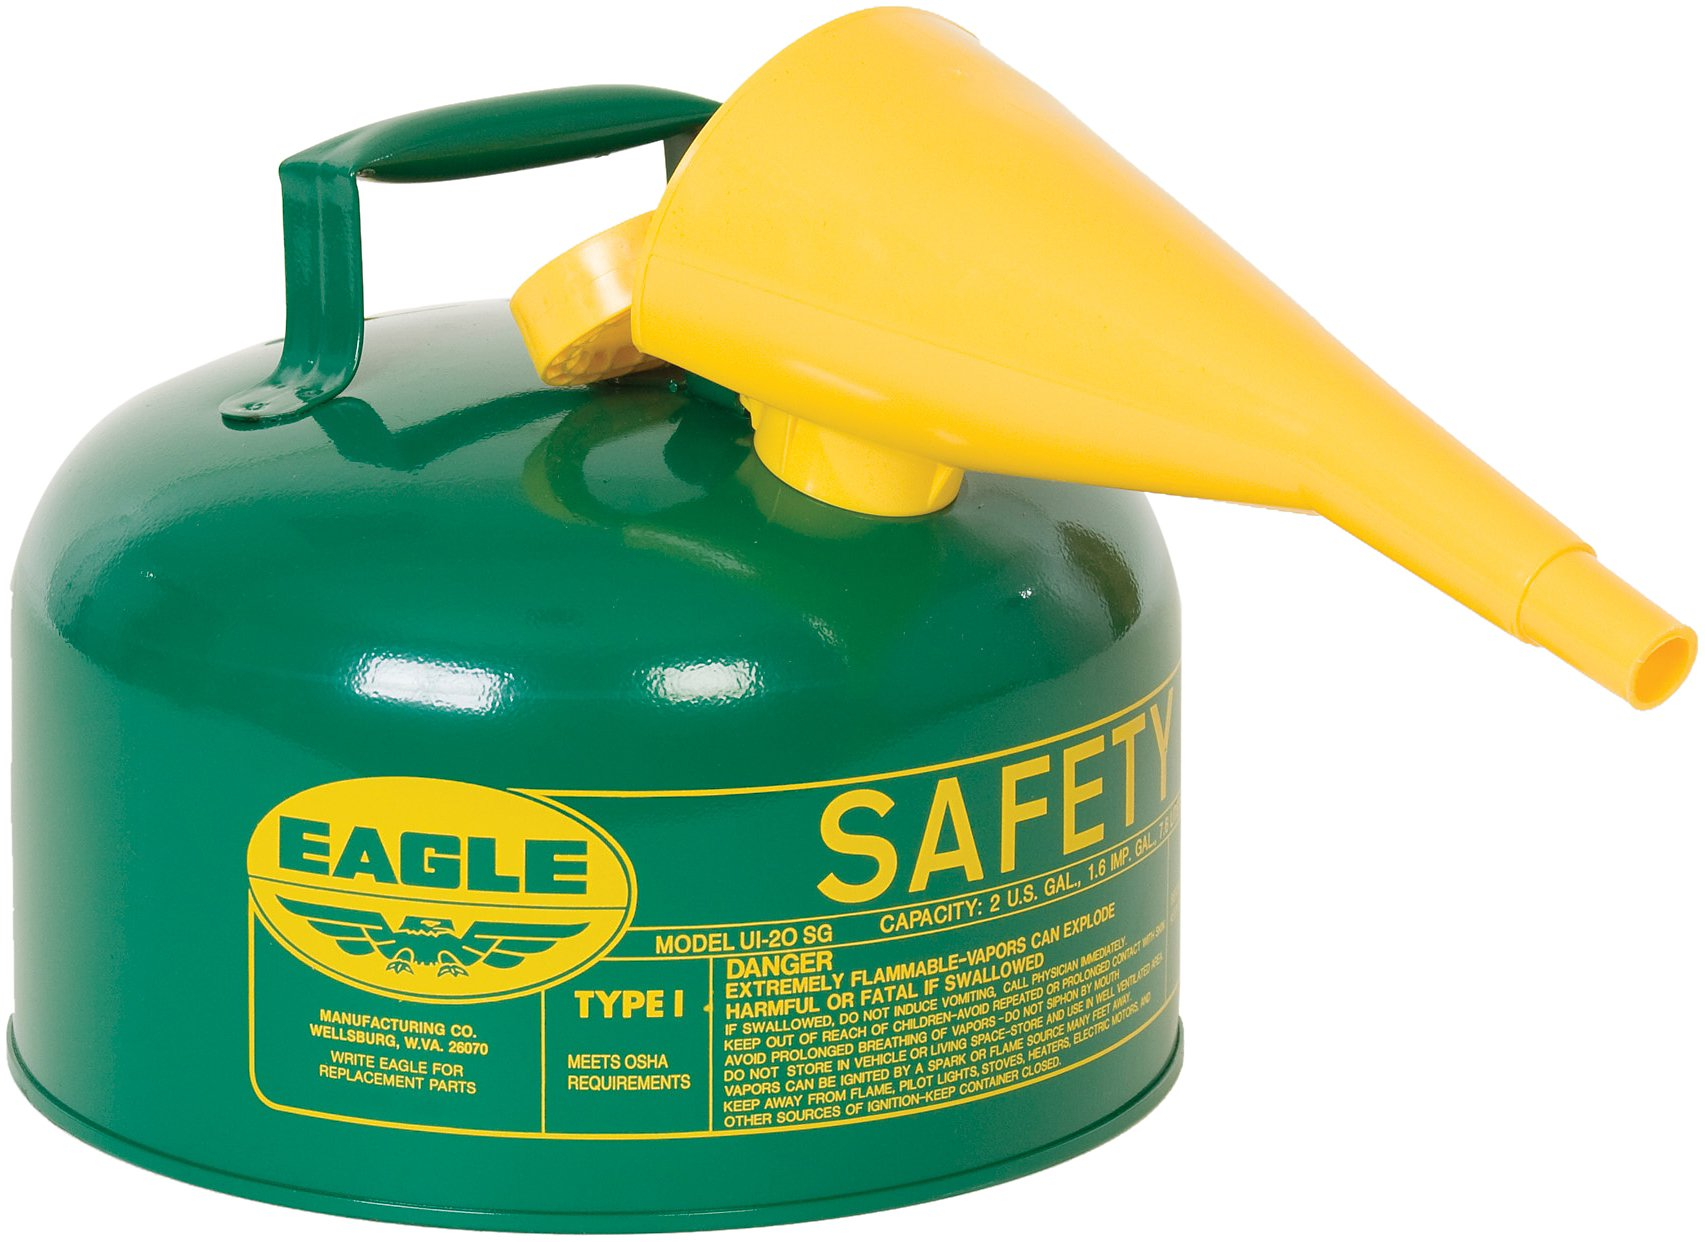 Eagle UI-20-FSG Type I Metal Safety Can with F-15 Funnel, Combustibles, 11-1/4'' Width x 9-1/2'' Depth, 2 Gallon Capacity, Green